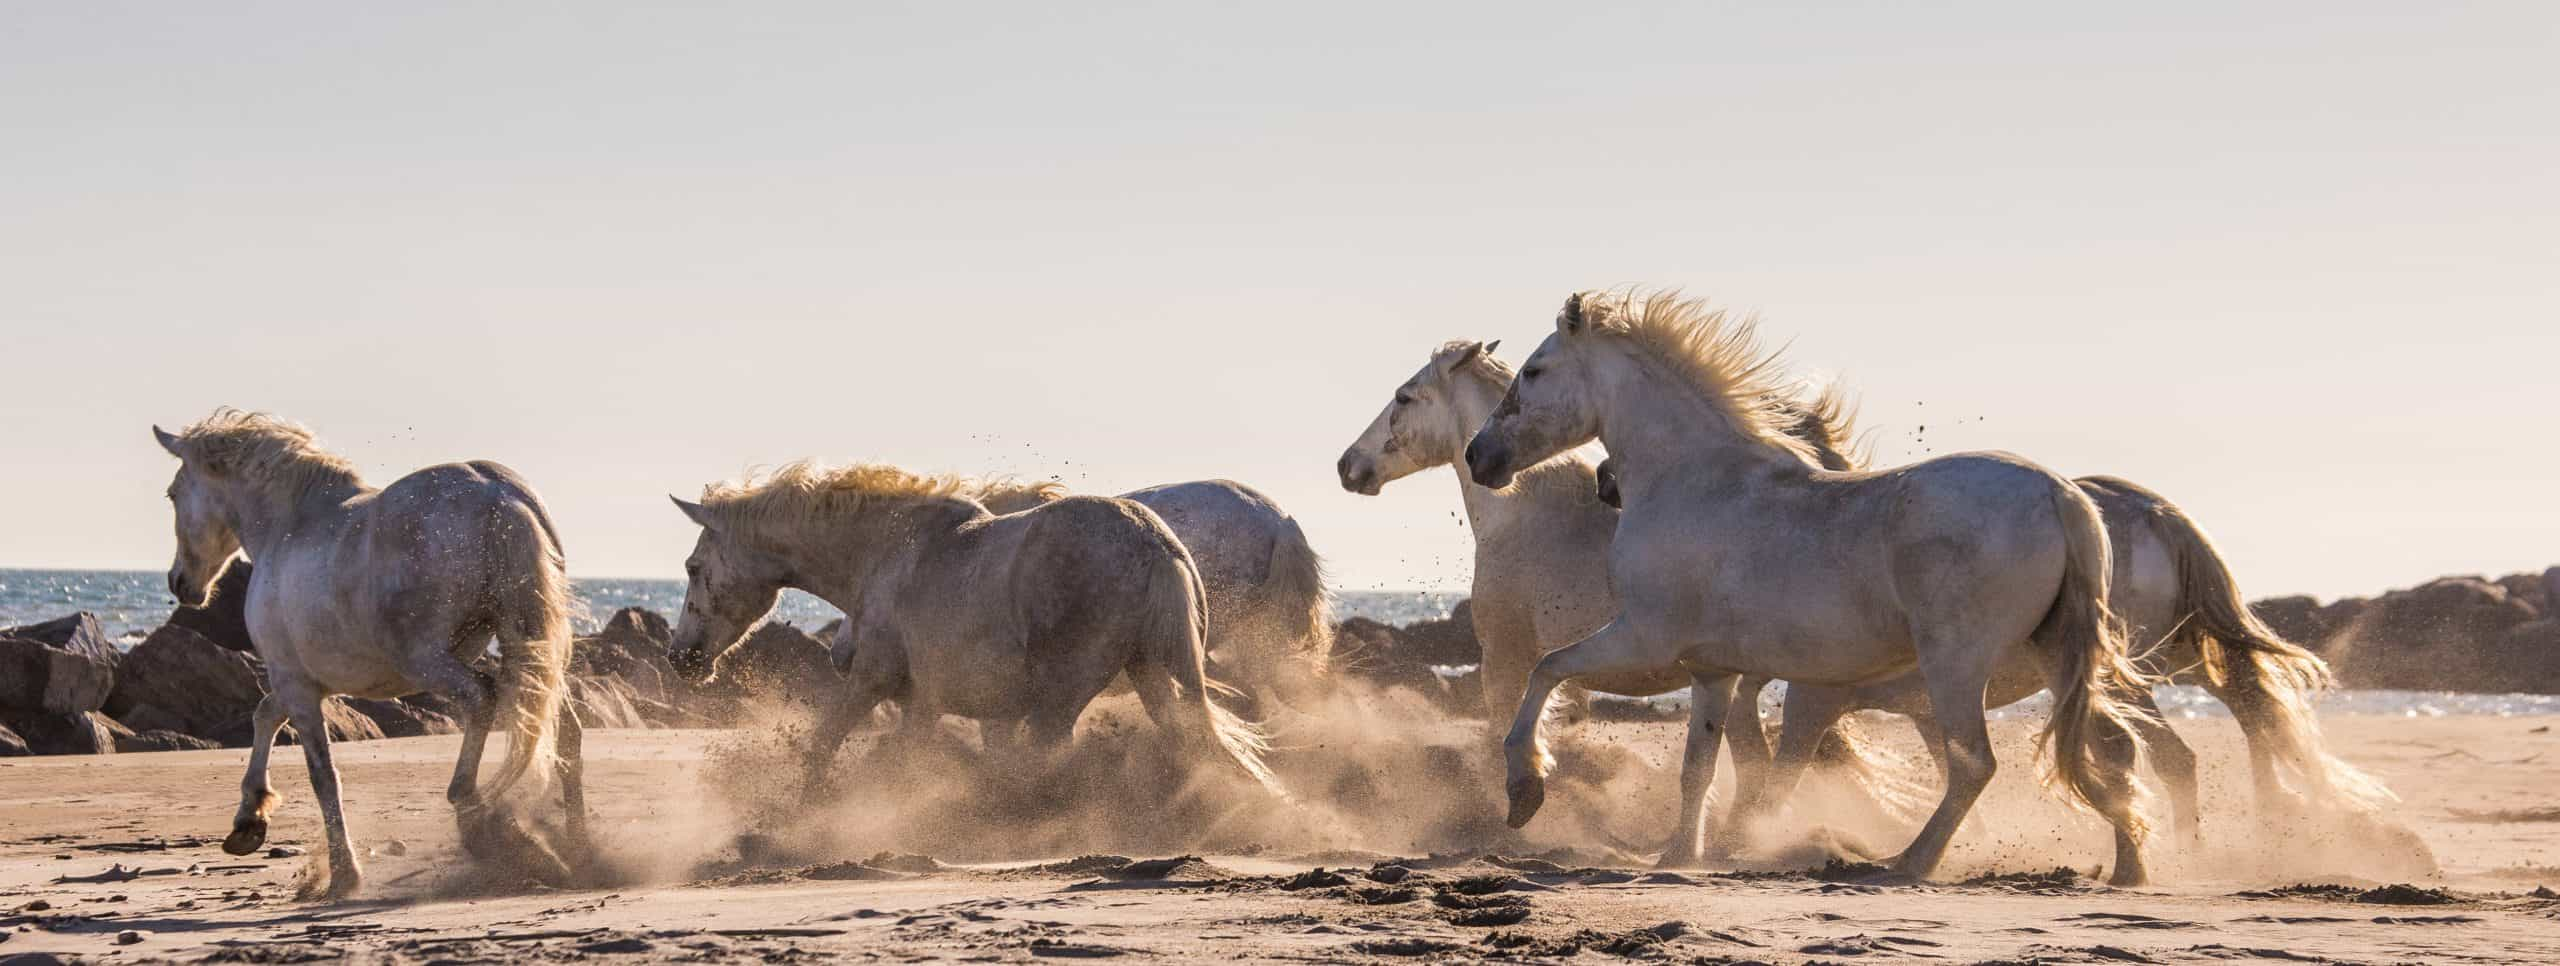 White Camargue Horses galloping on the sand. Parc Regional de Camargue. France. Provence. An excellent illustration